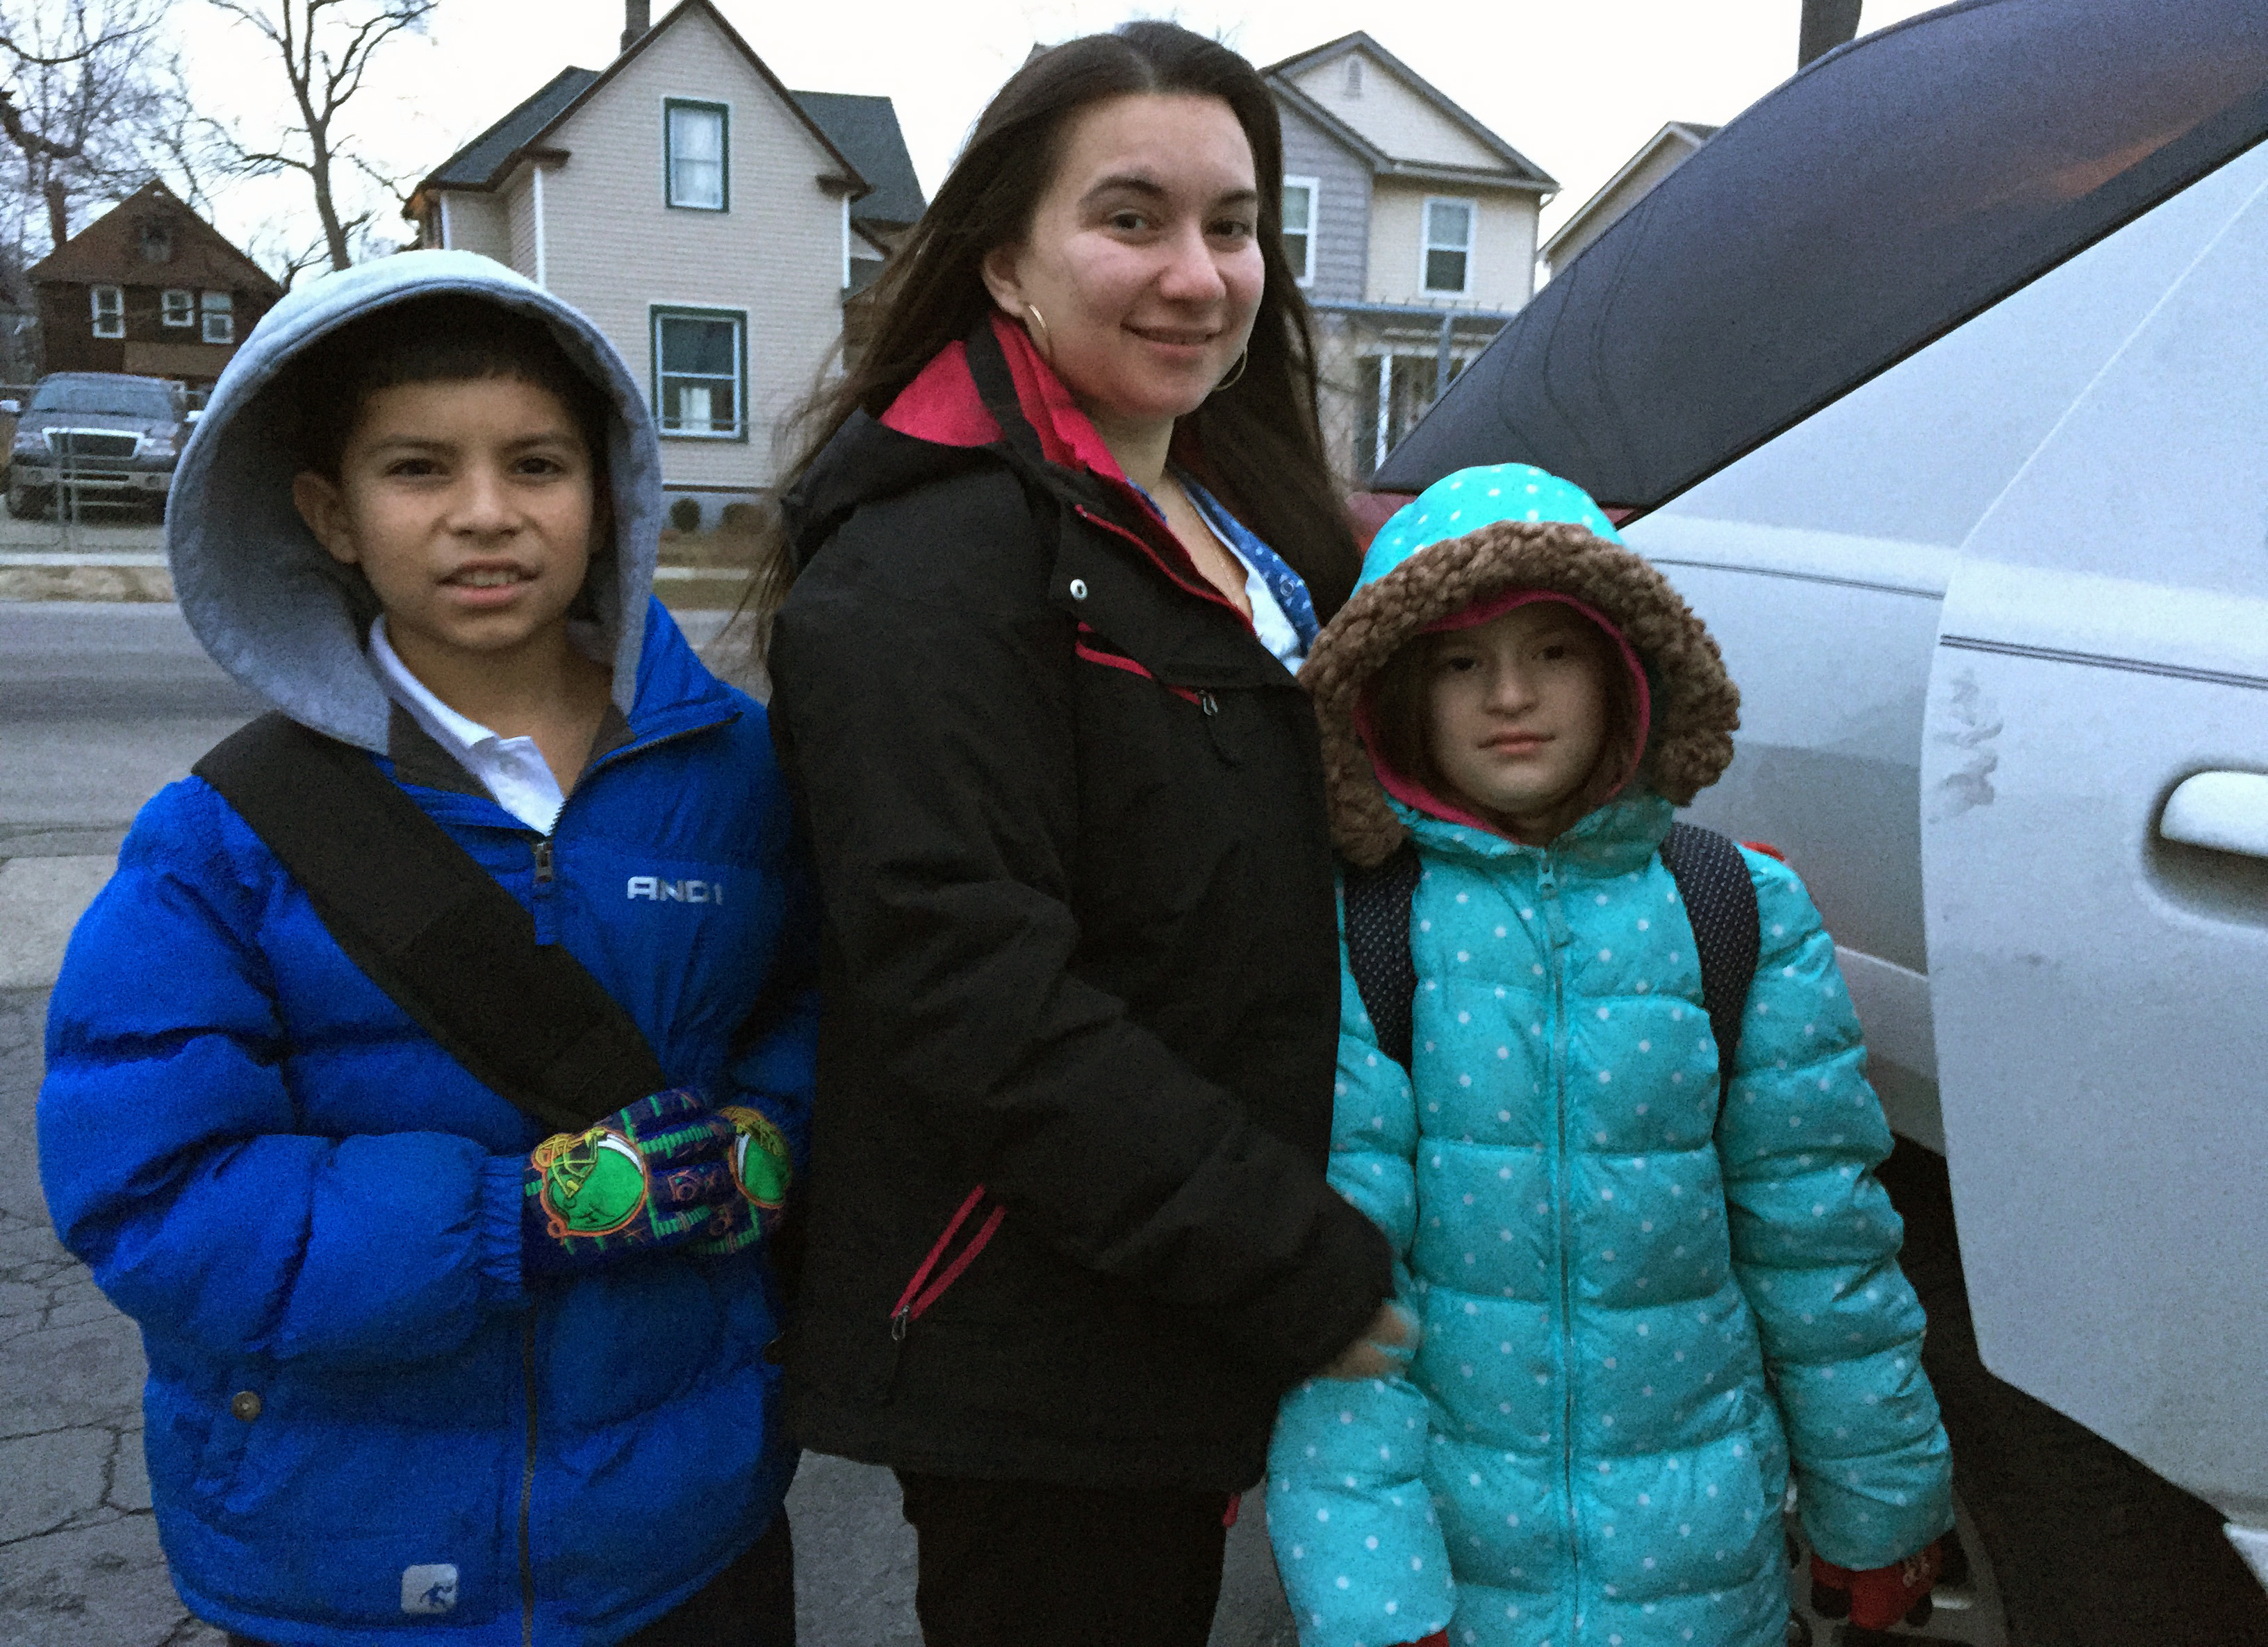 Detroit Public School teacher Alise Anaya with her children Victor, 10, and Analise, 8, before they head to a public school in Southwest Detroit from their home in a nearby suburb.